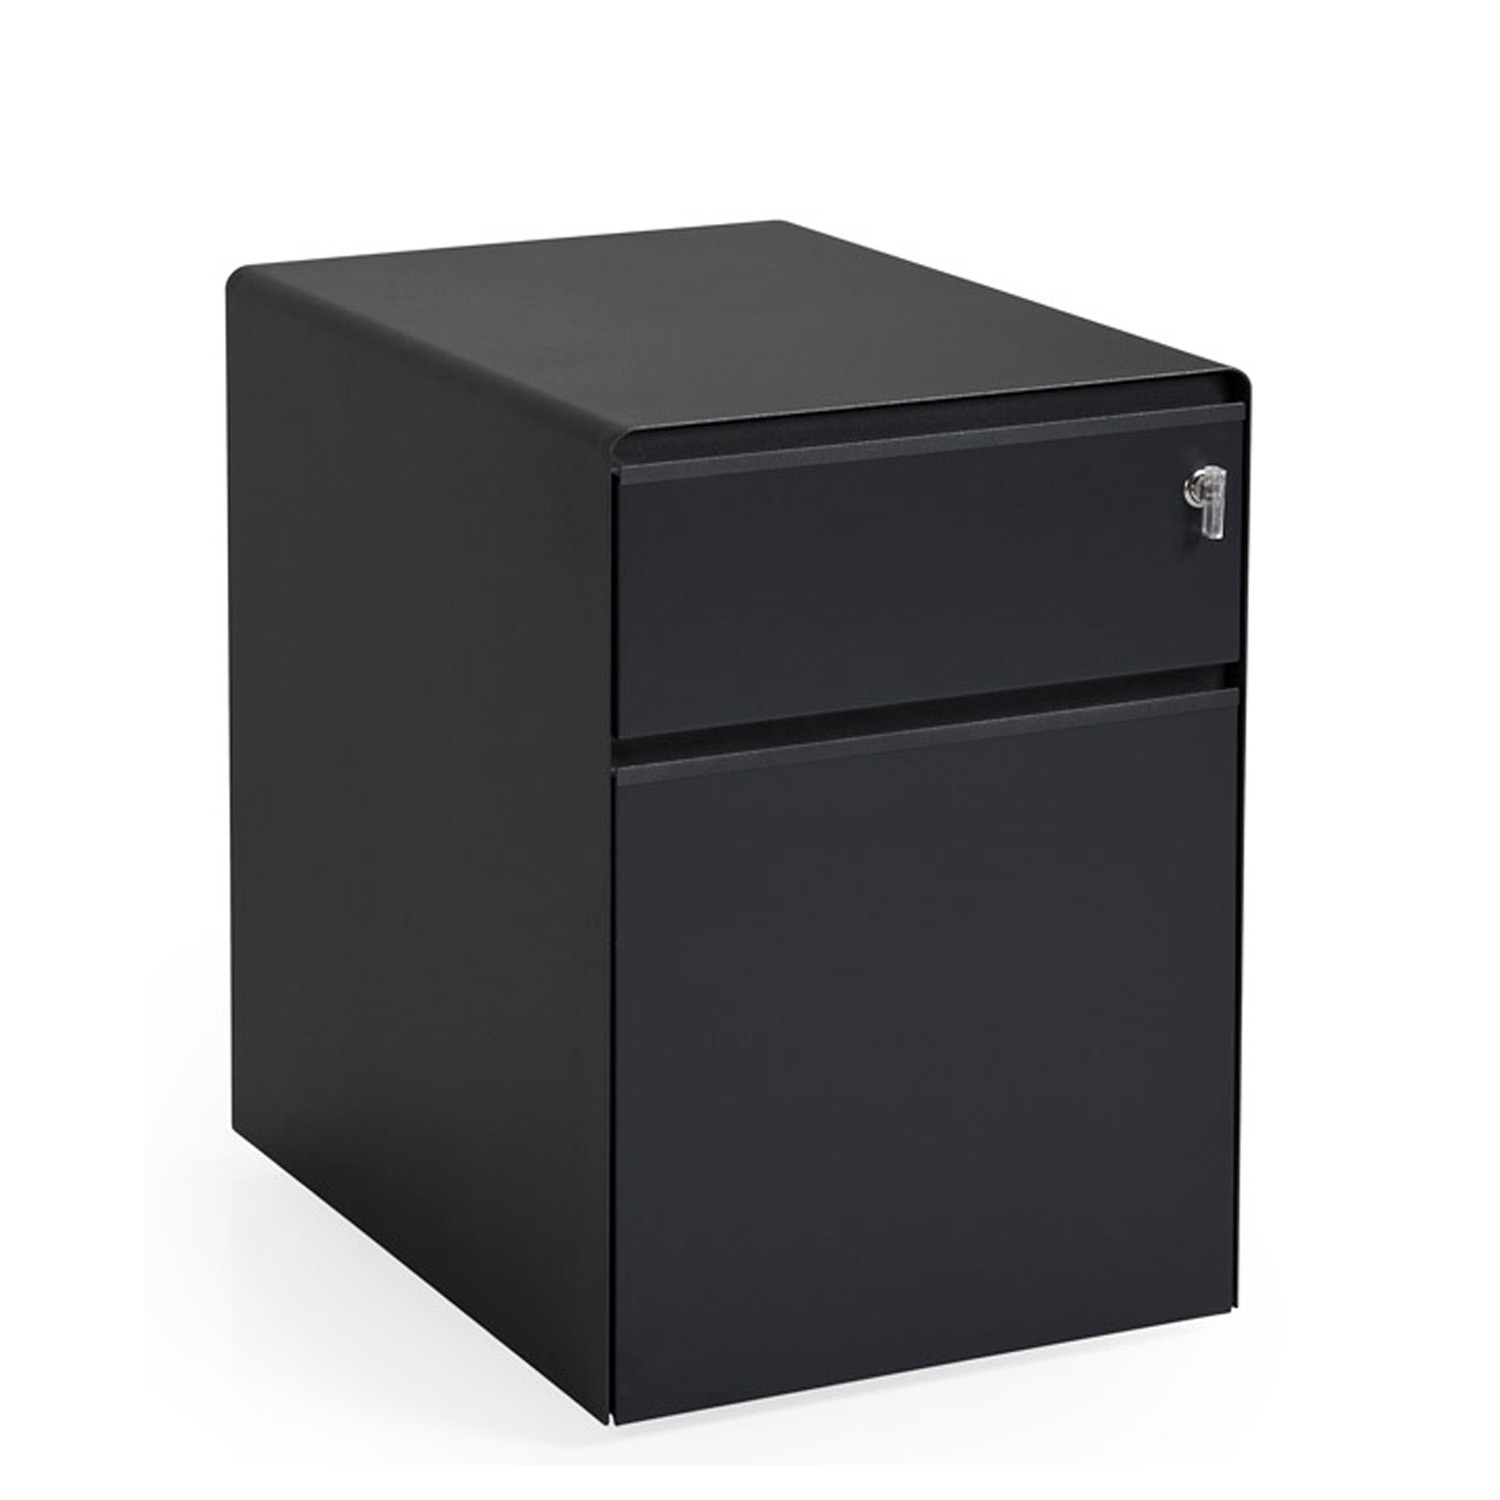 Song Black Pedestal Cabinets by Koray Malhan